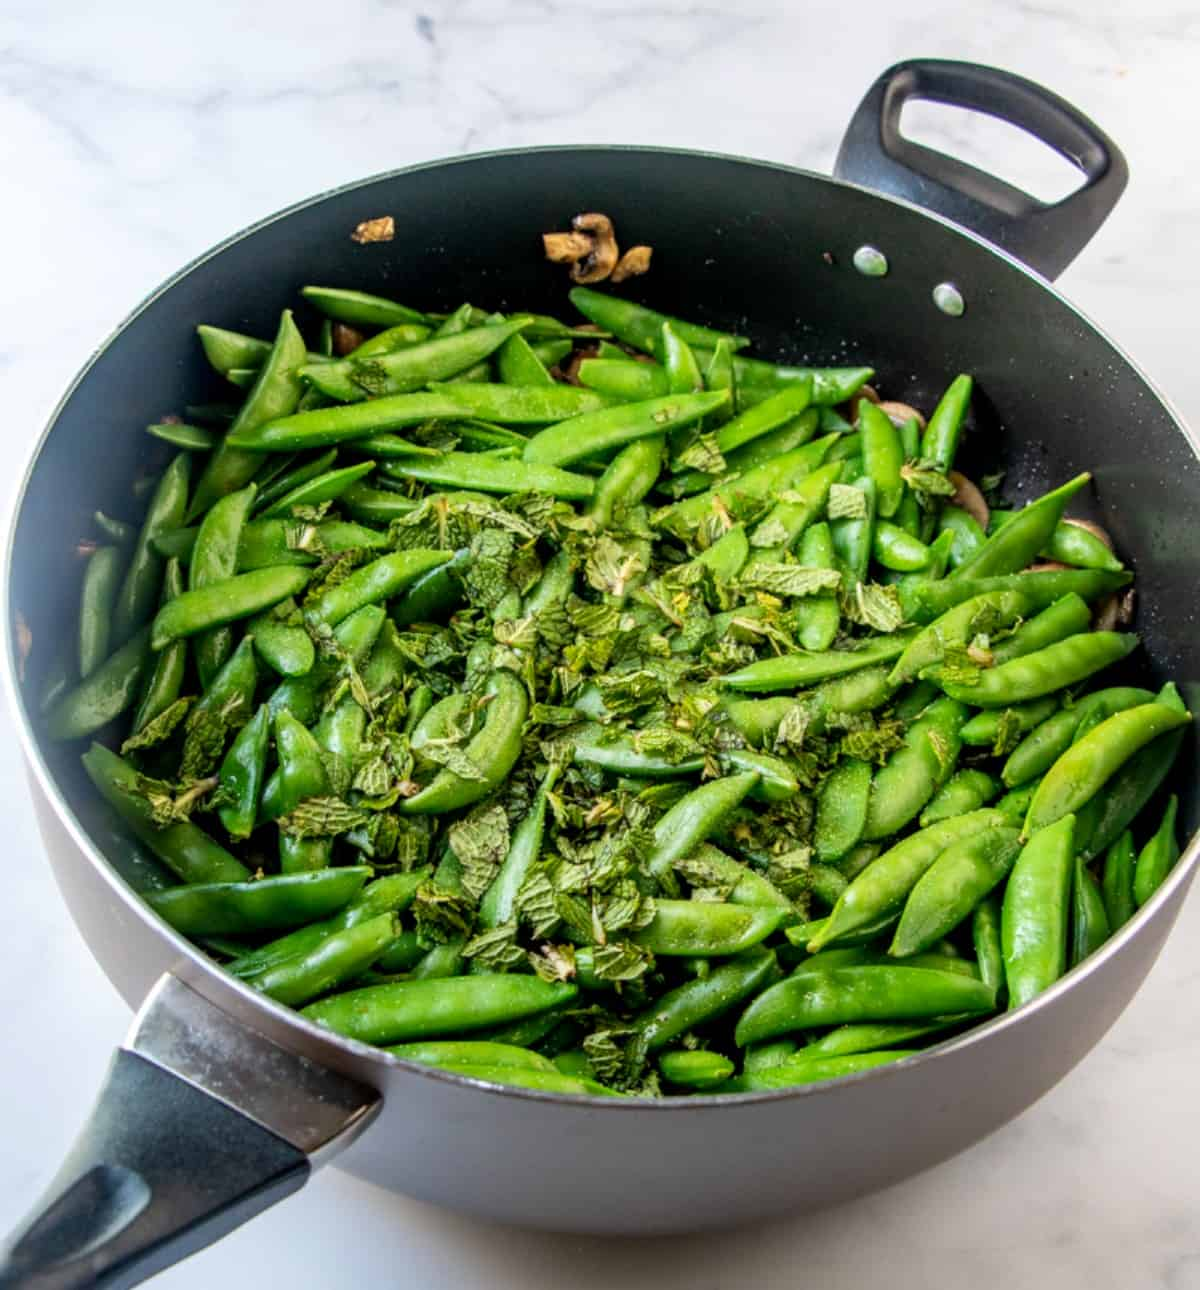 Sugar Snap peas are added in the skillet along with fresh mint.